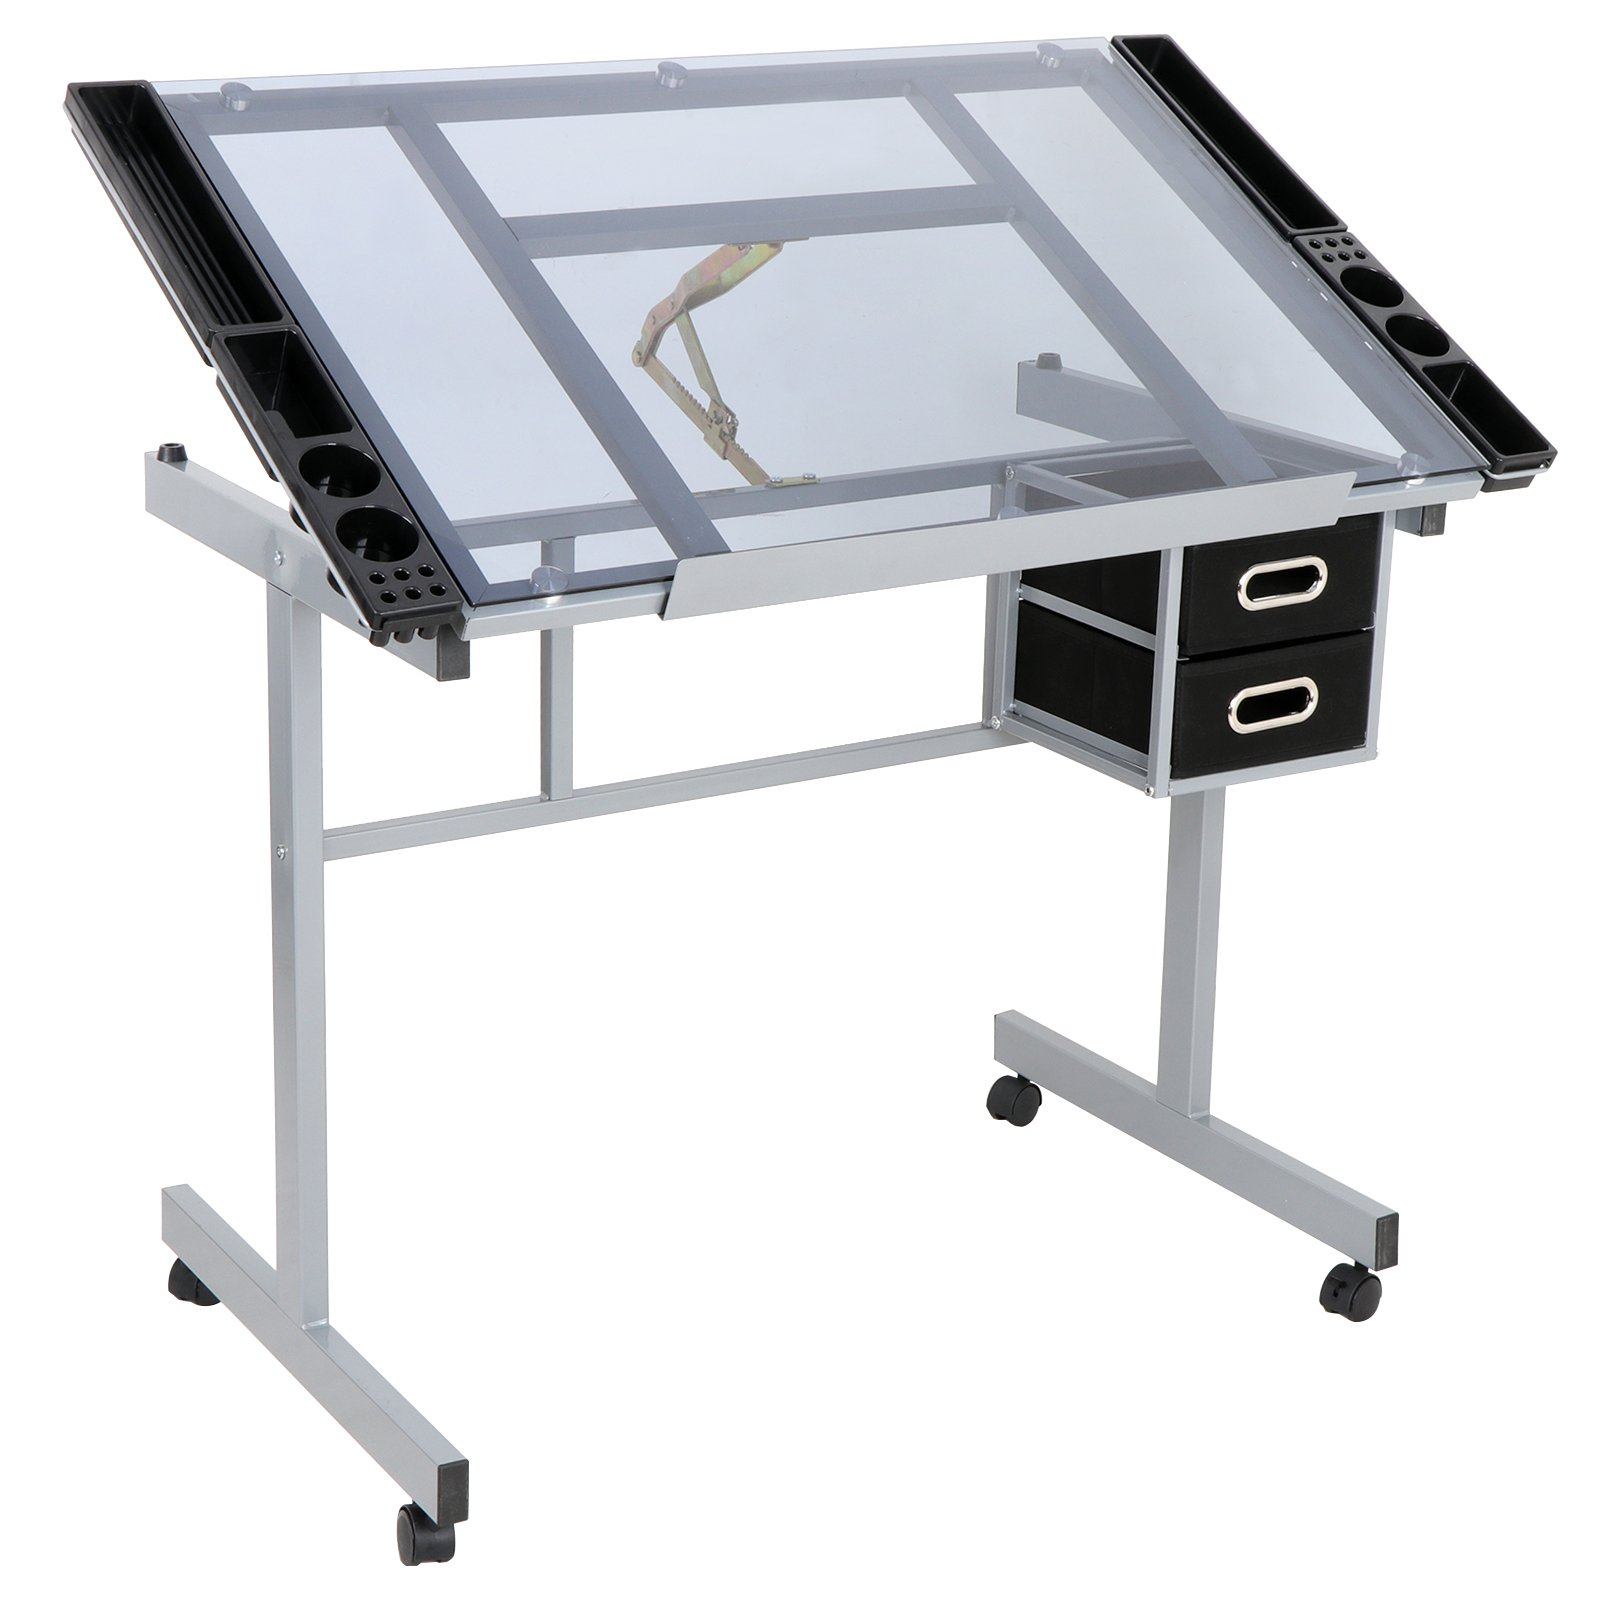 ZENY Adjustable Drafting Drawing Table Glass Top Rolling Drafting Desk Tempered Craft Station